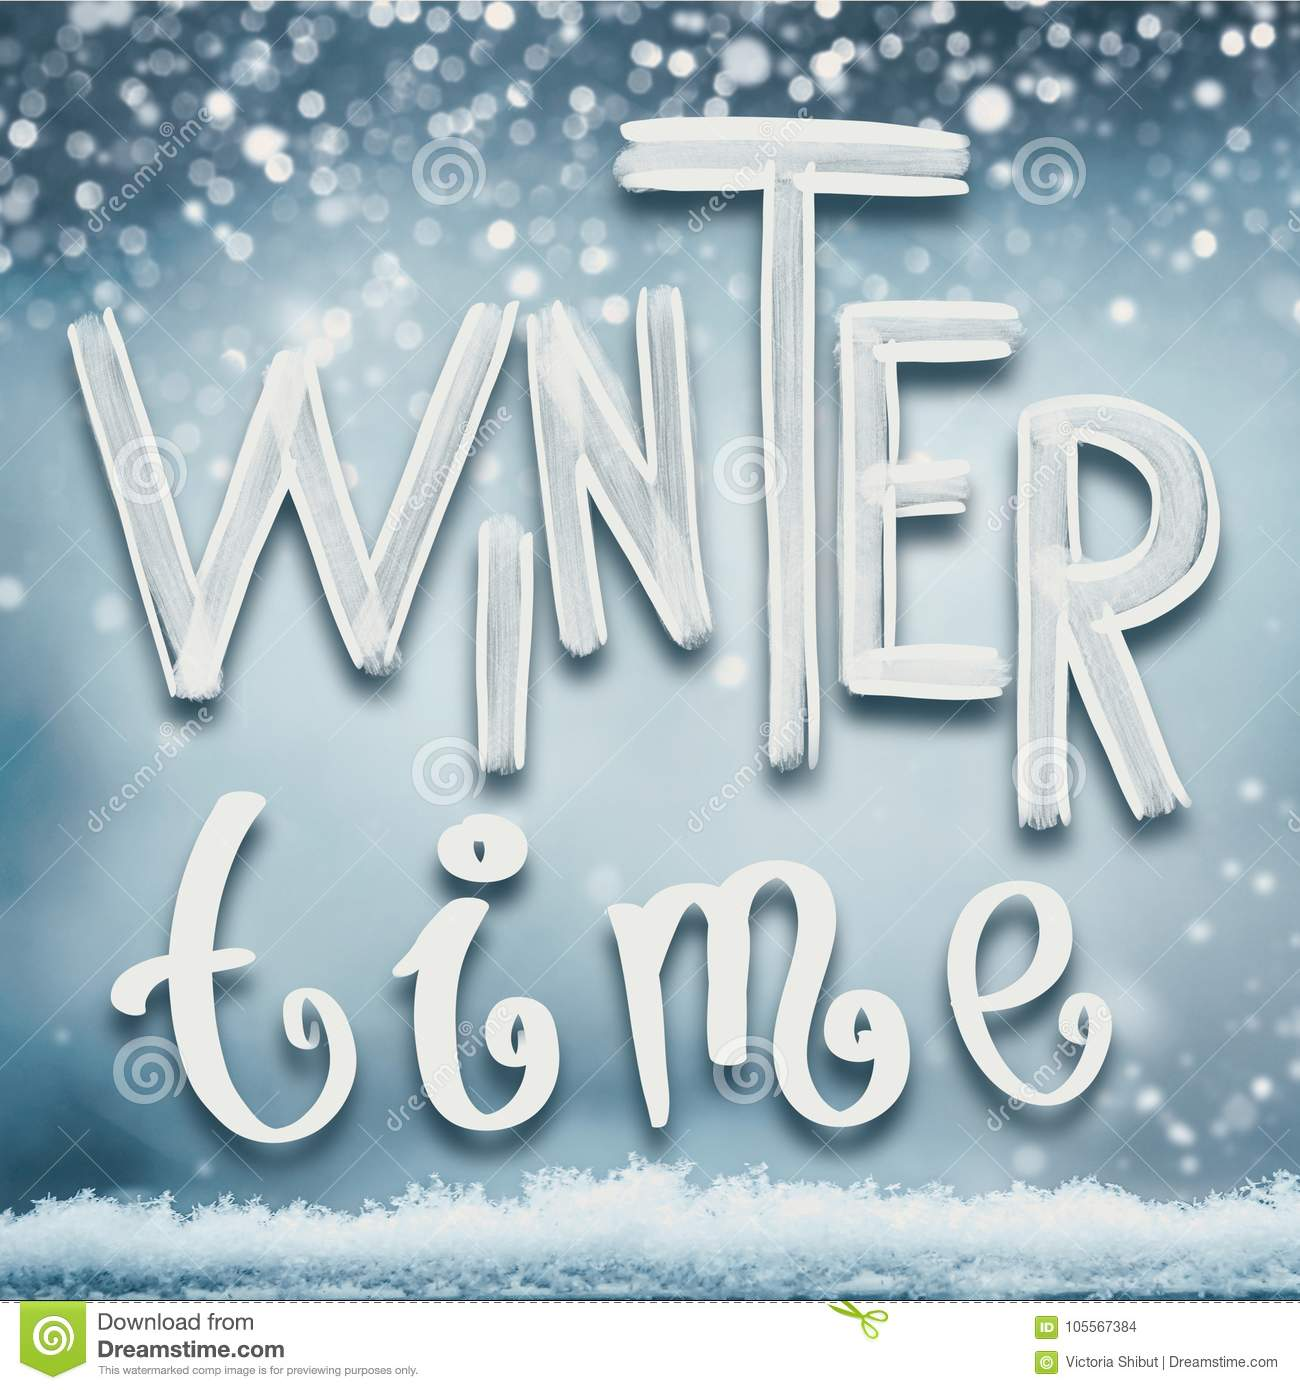 Winter holidays card with winter time lettering stock photo image winter holidays card with winter time lettering m4hsunfo